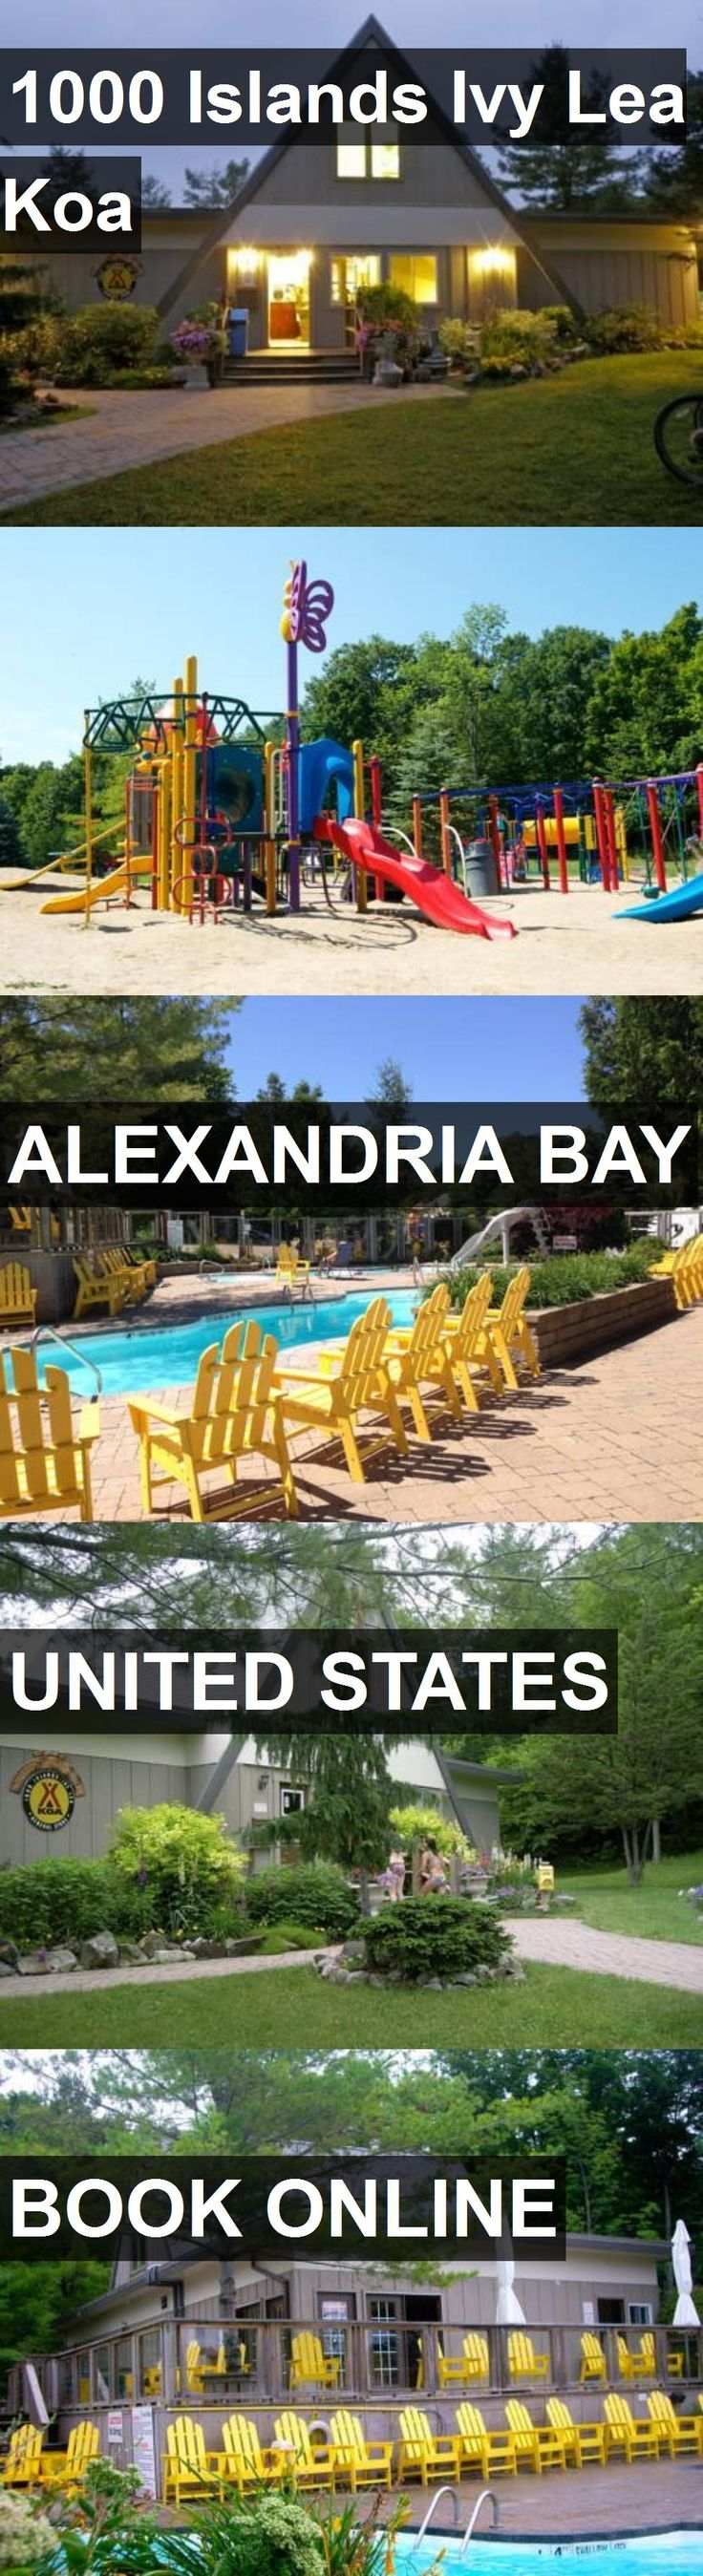 Hotel 1000 Islands Ivy Lea Koa in Alexandria Bay, United States. For more information, photos, reviews and best prices please follow the link. #UnitedStates #AlexandriaBay #1000IslandsIvyLeaKoa #hotel #travel #vacation